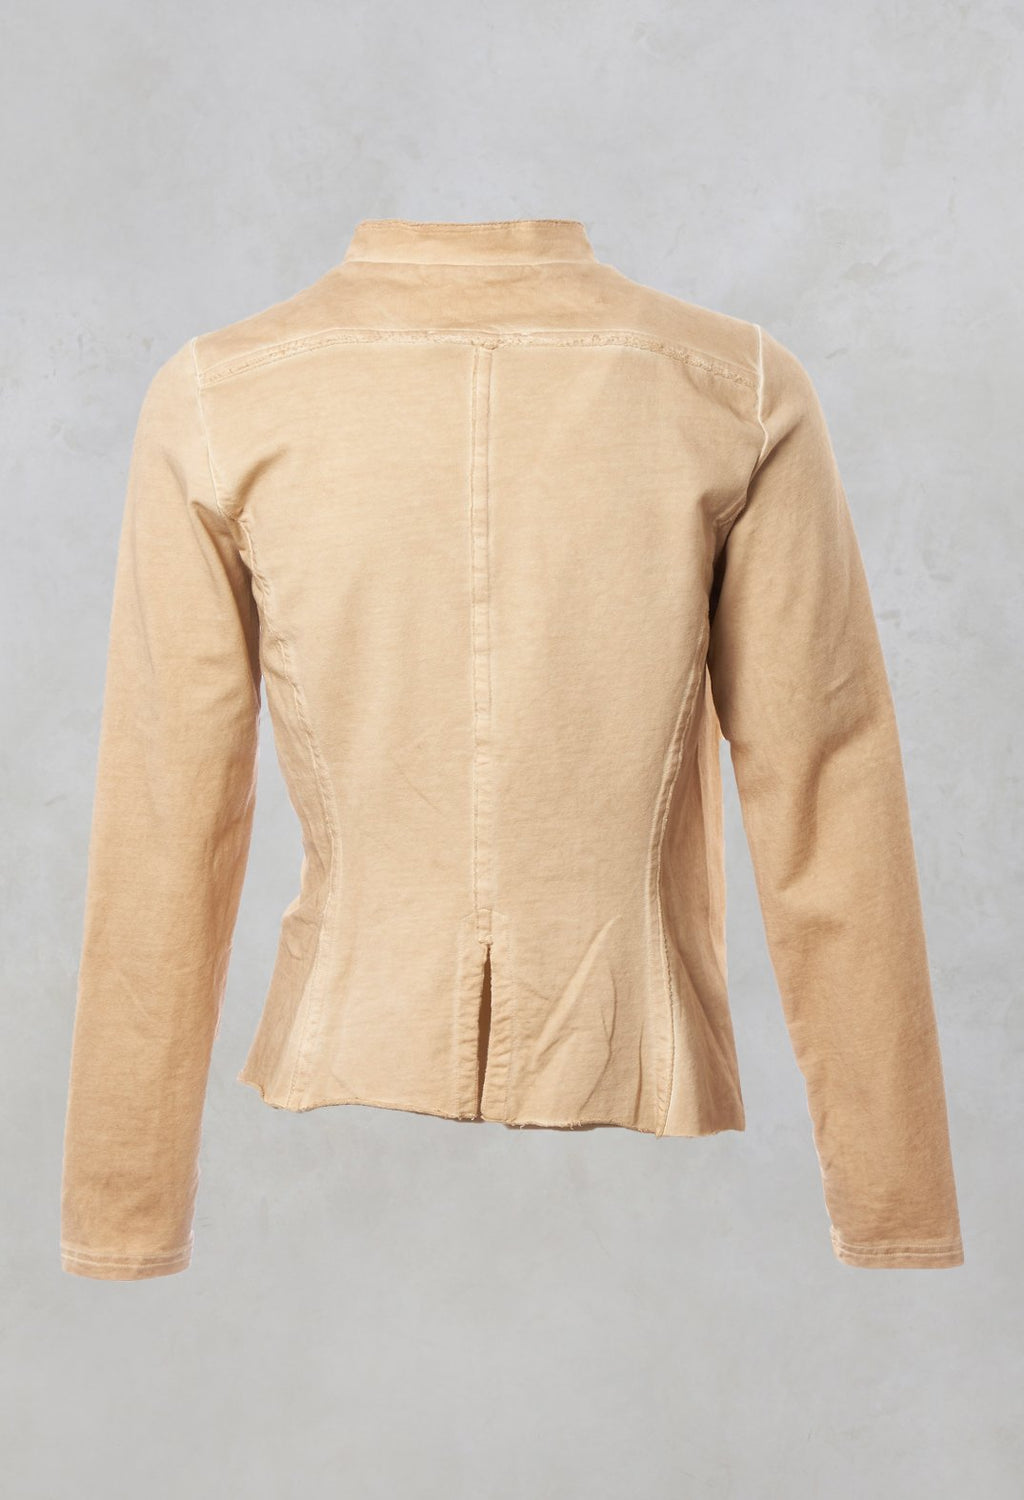 Pauini Jacket in Poudre